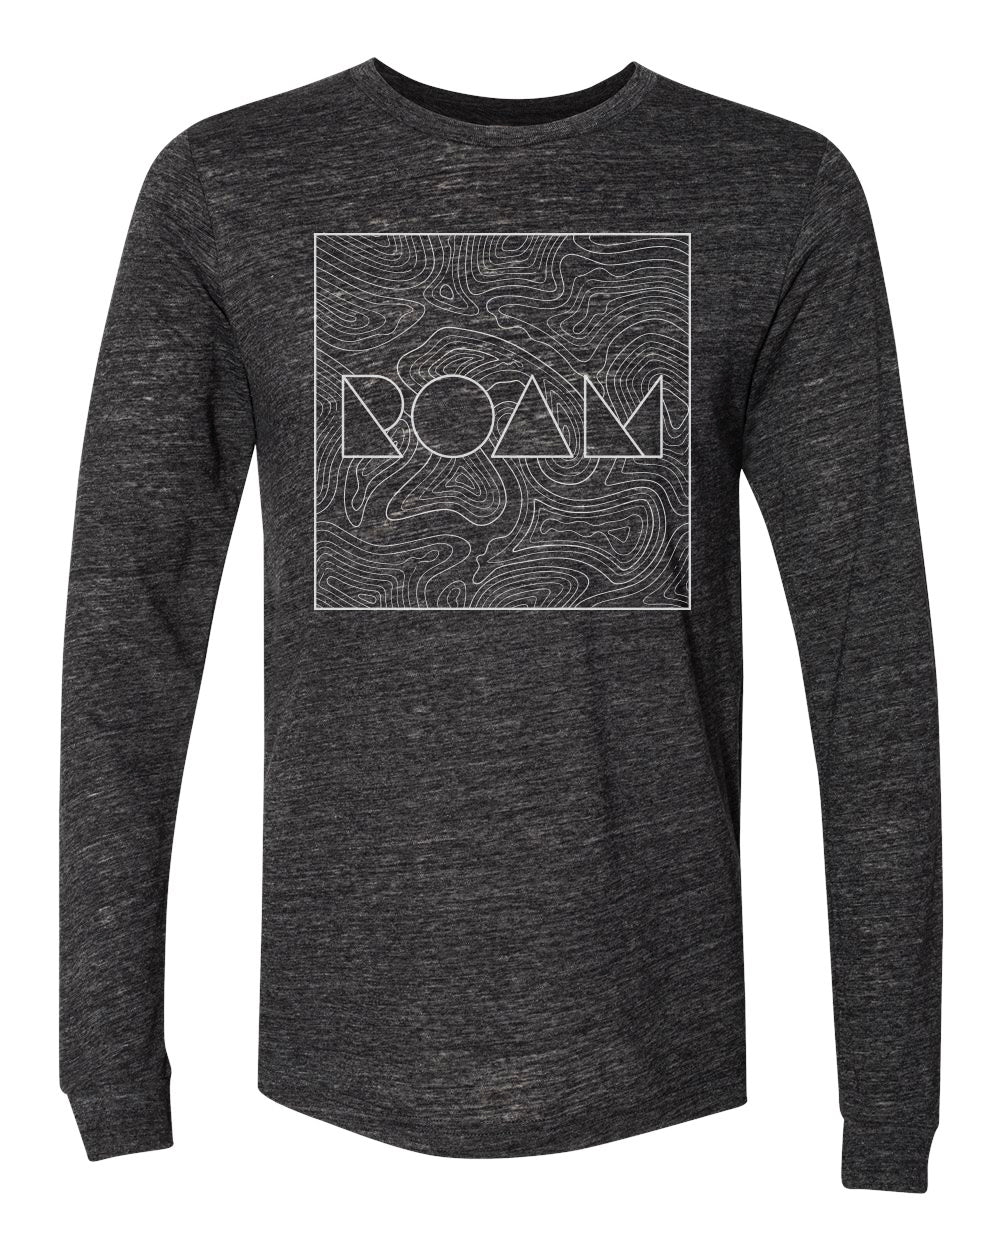 Roam Topo Map Long Sleeve - Charcoal Black - Front